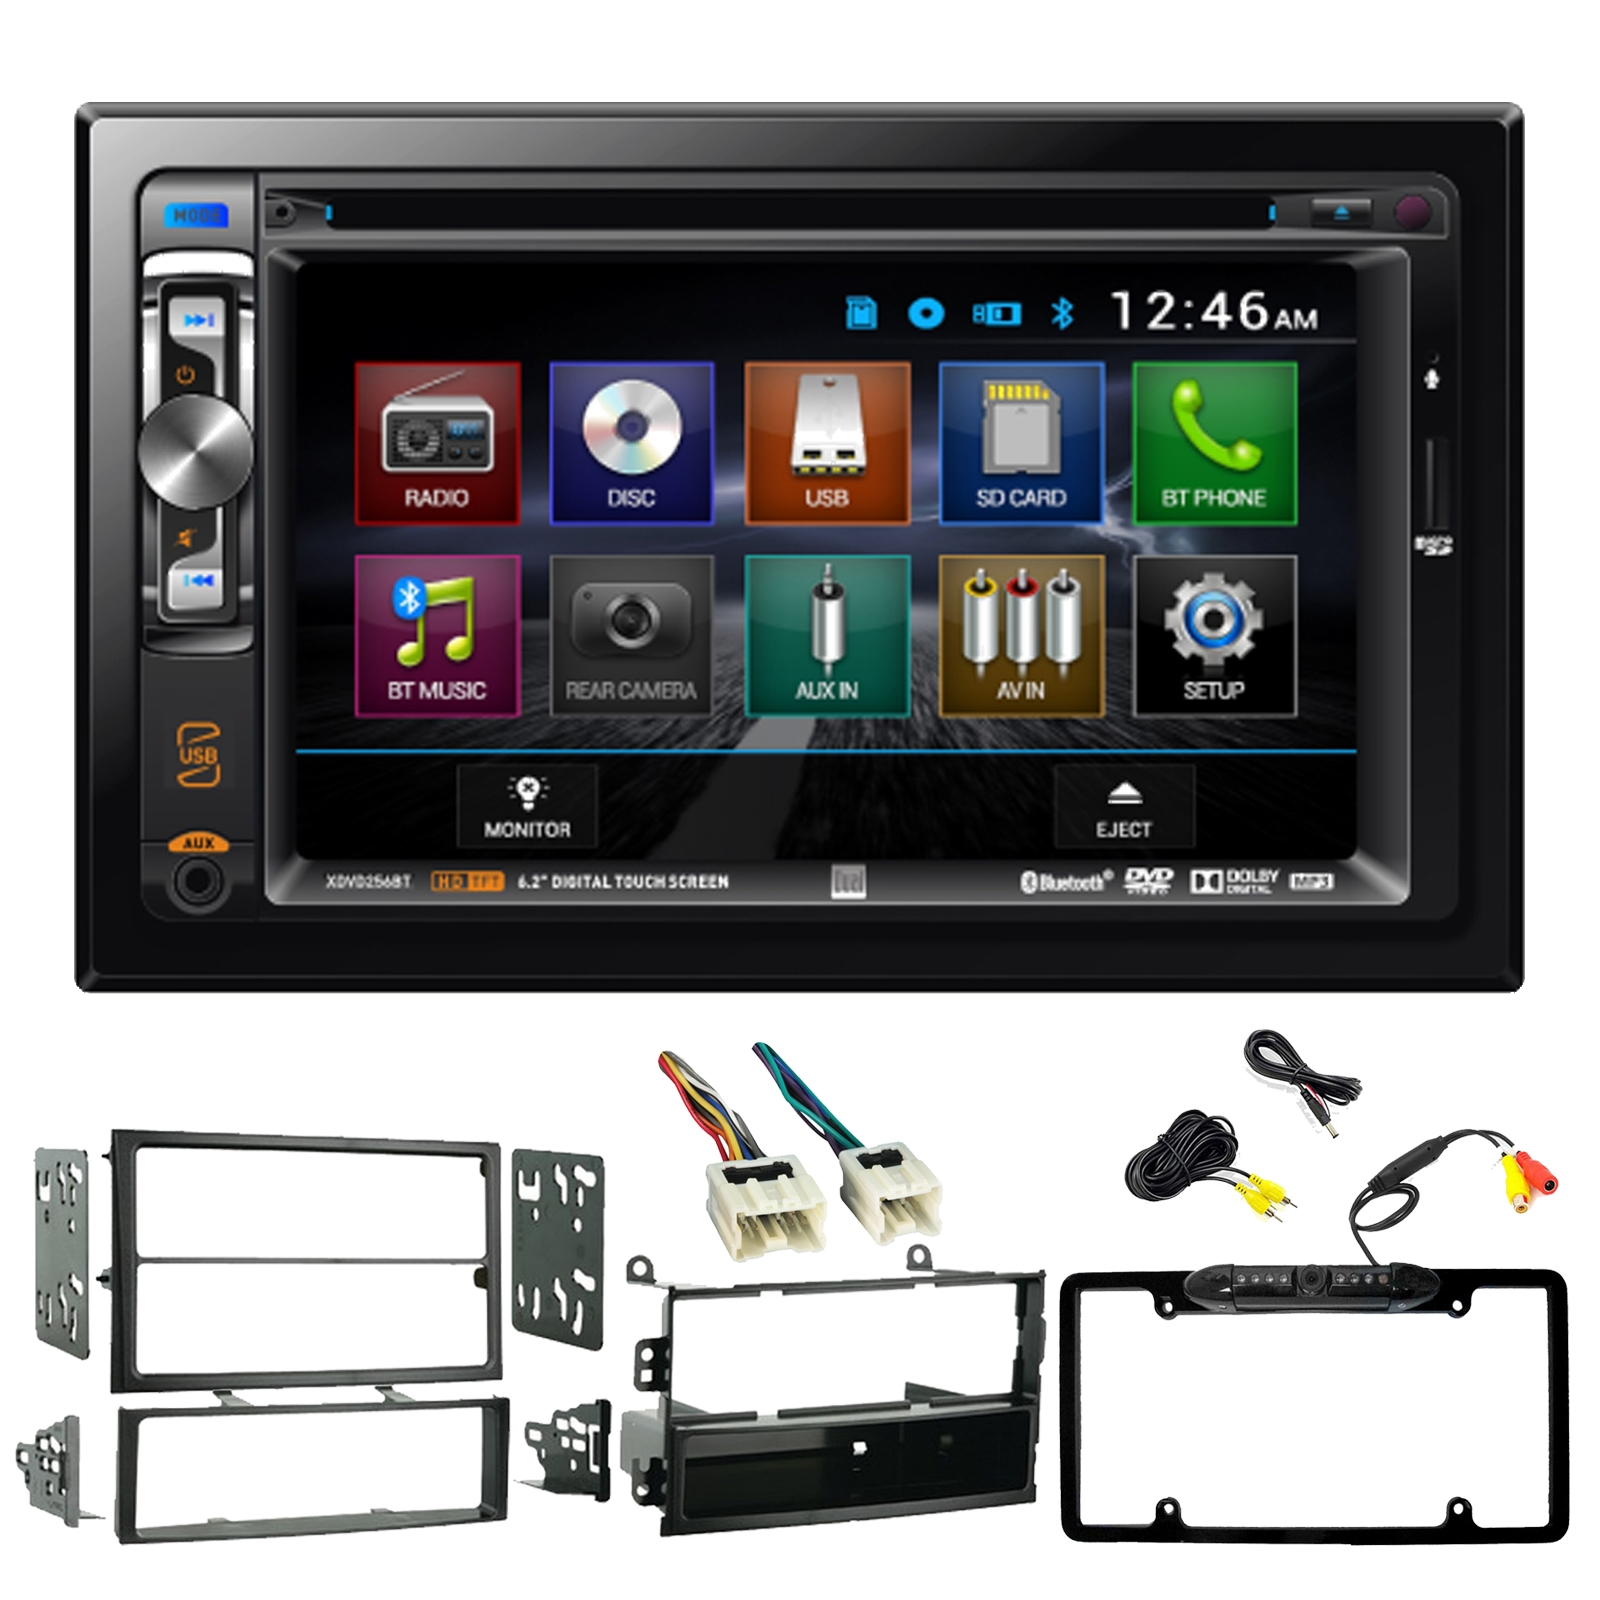 hight resolution of details about jvc 2 din bluetooth stereo receiver dash kit wiring harness rearview camera